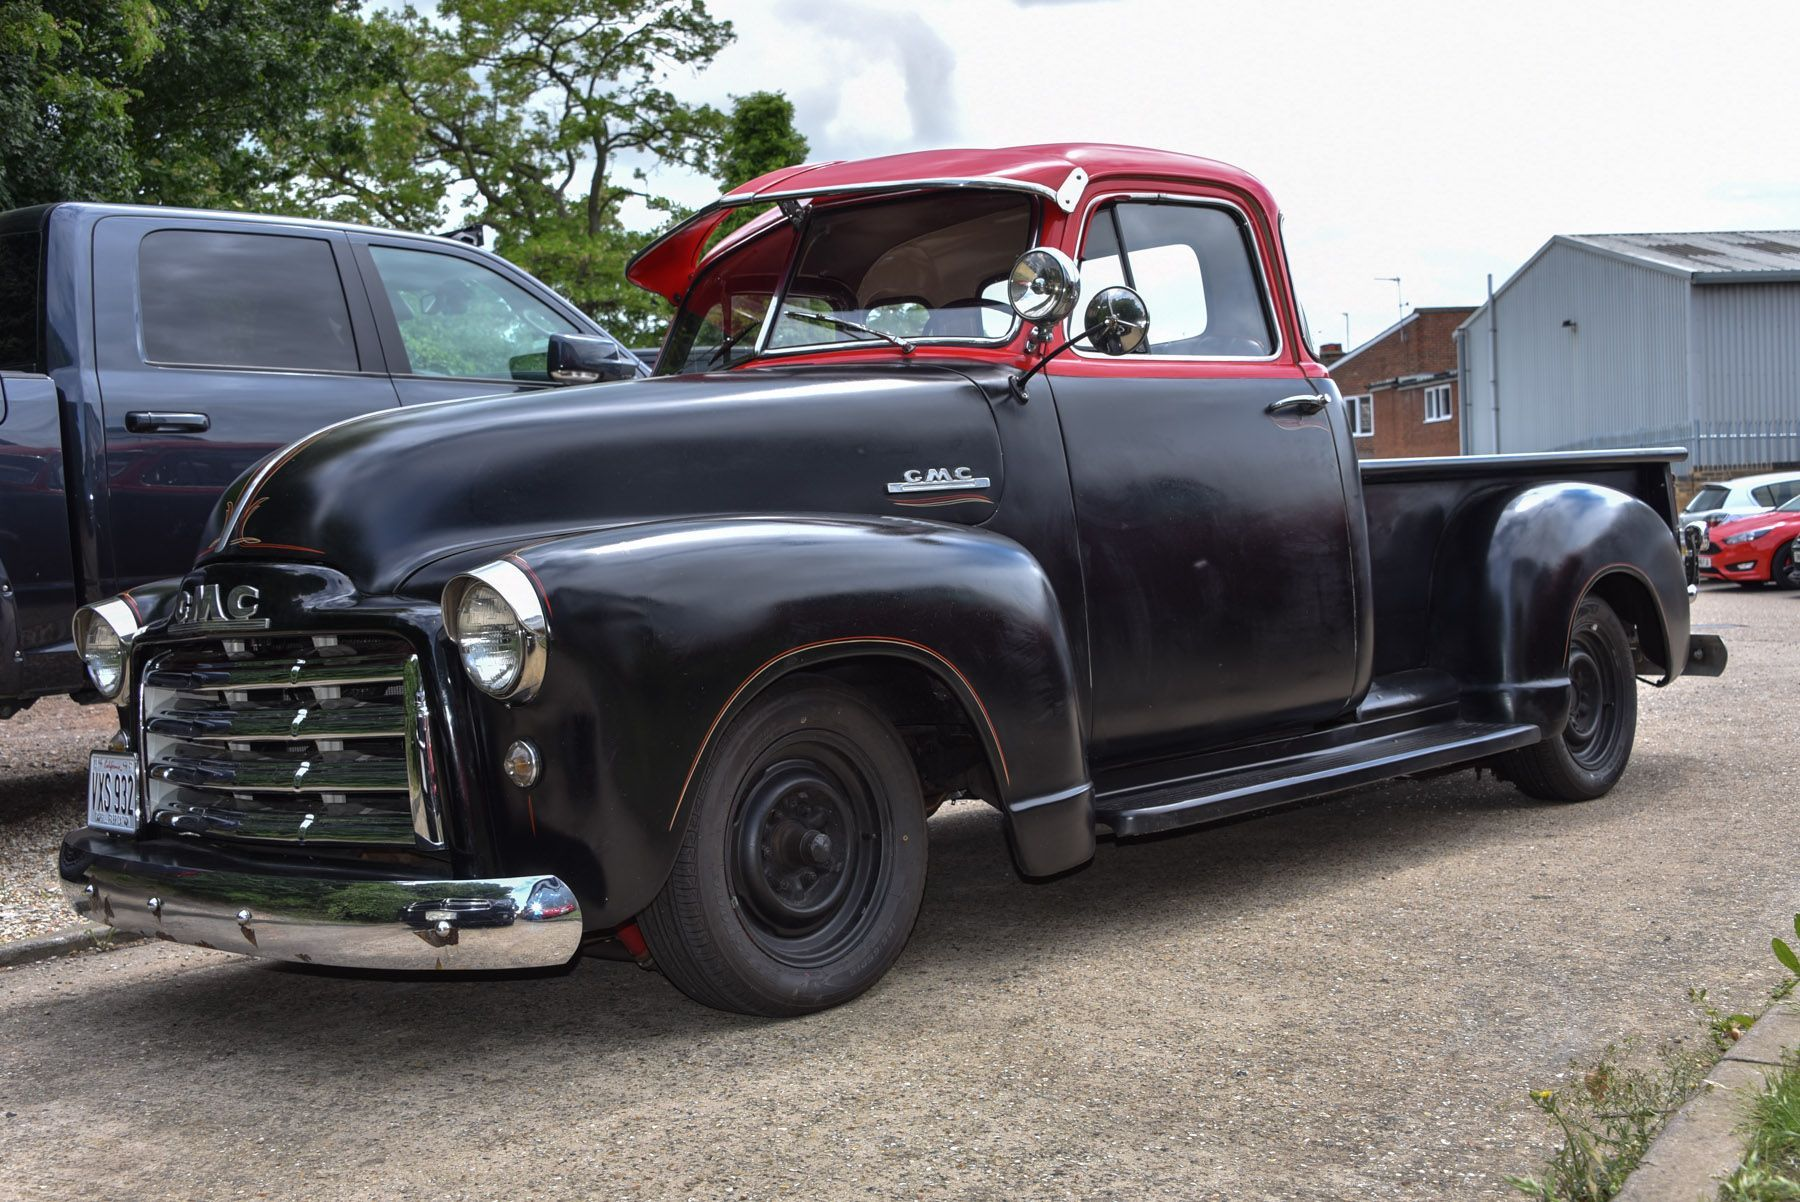 1951 Classic Americana GMC Pickup with new Chevrolet 350